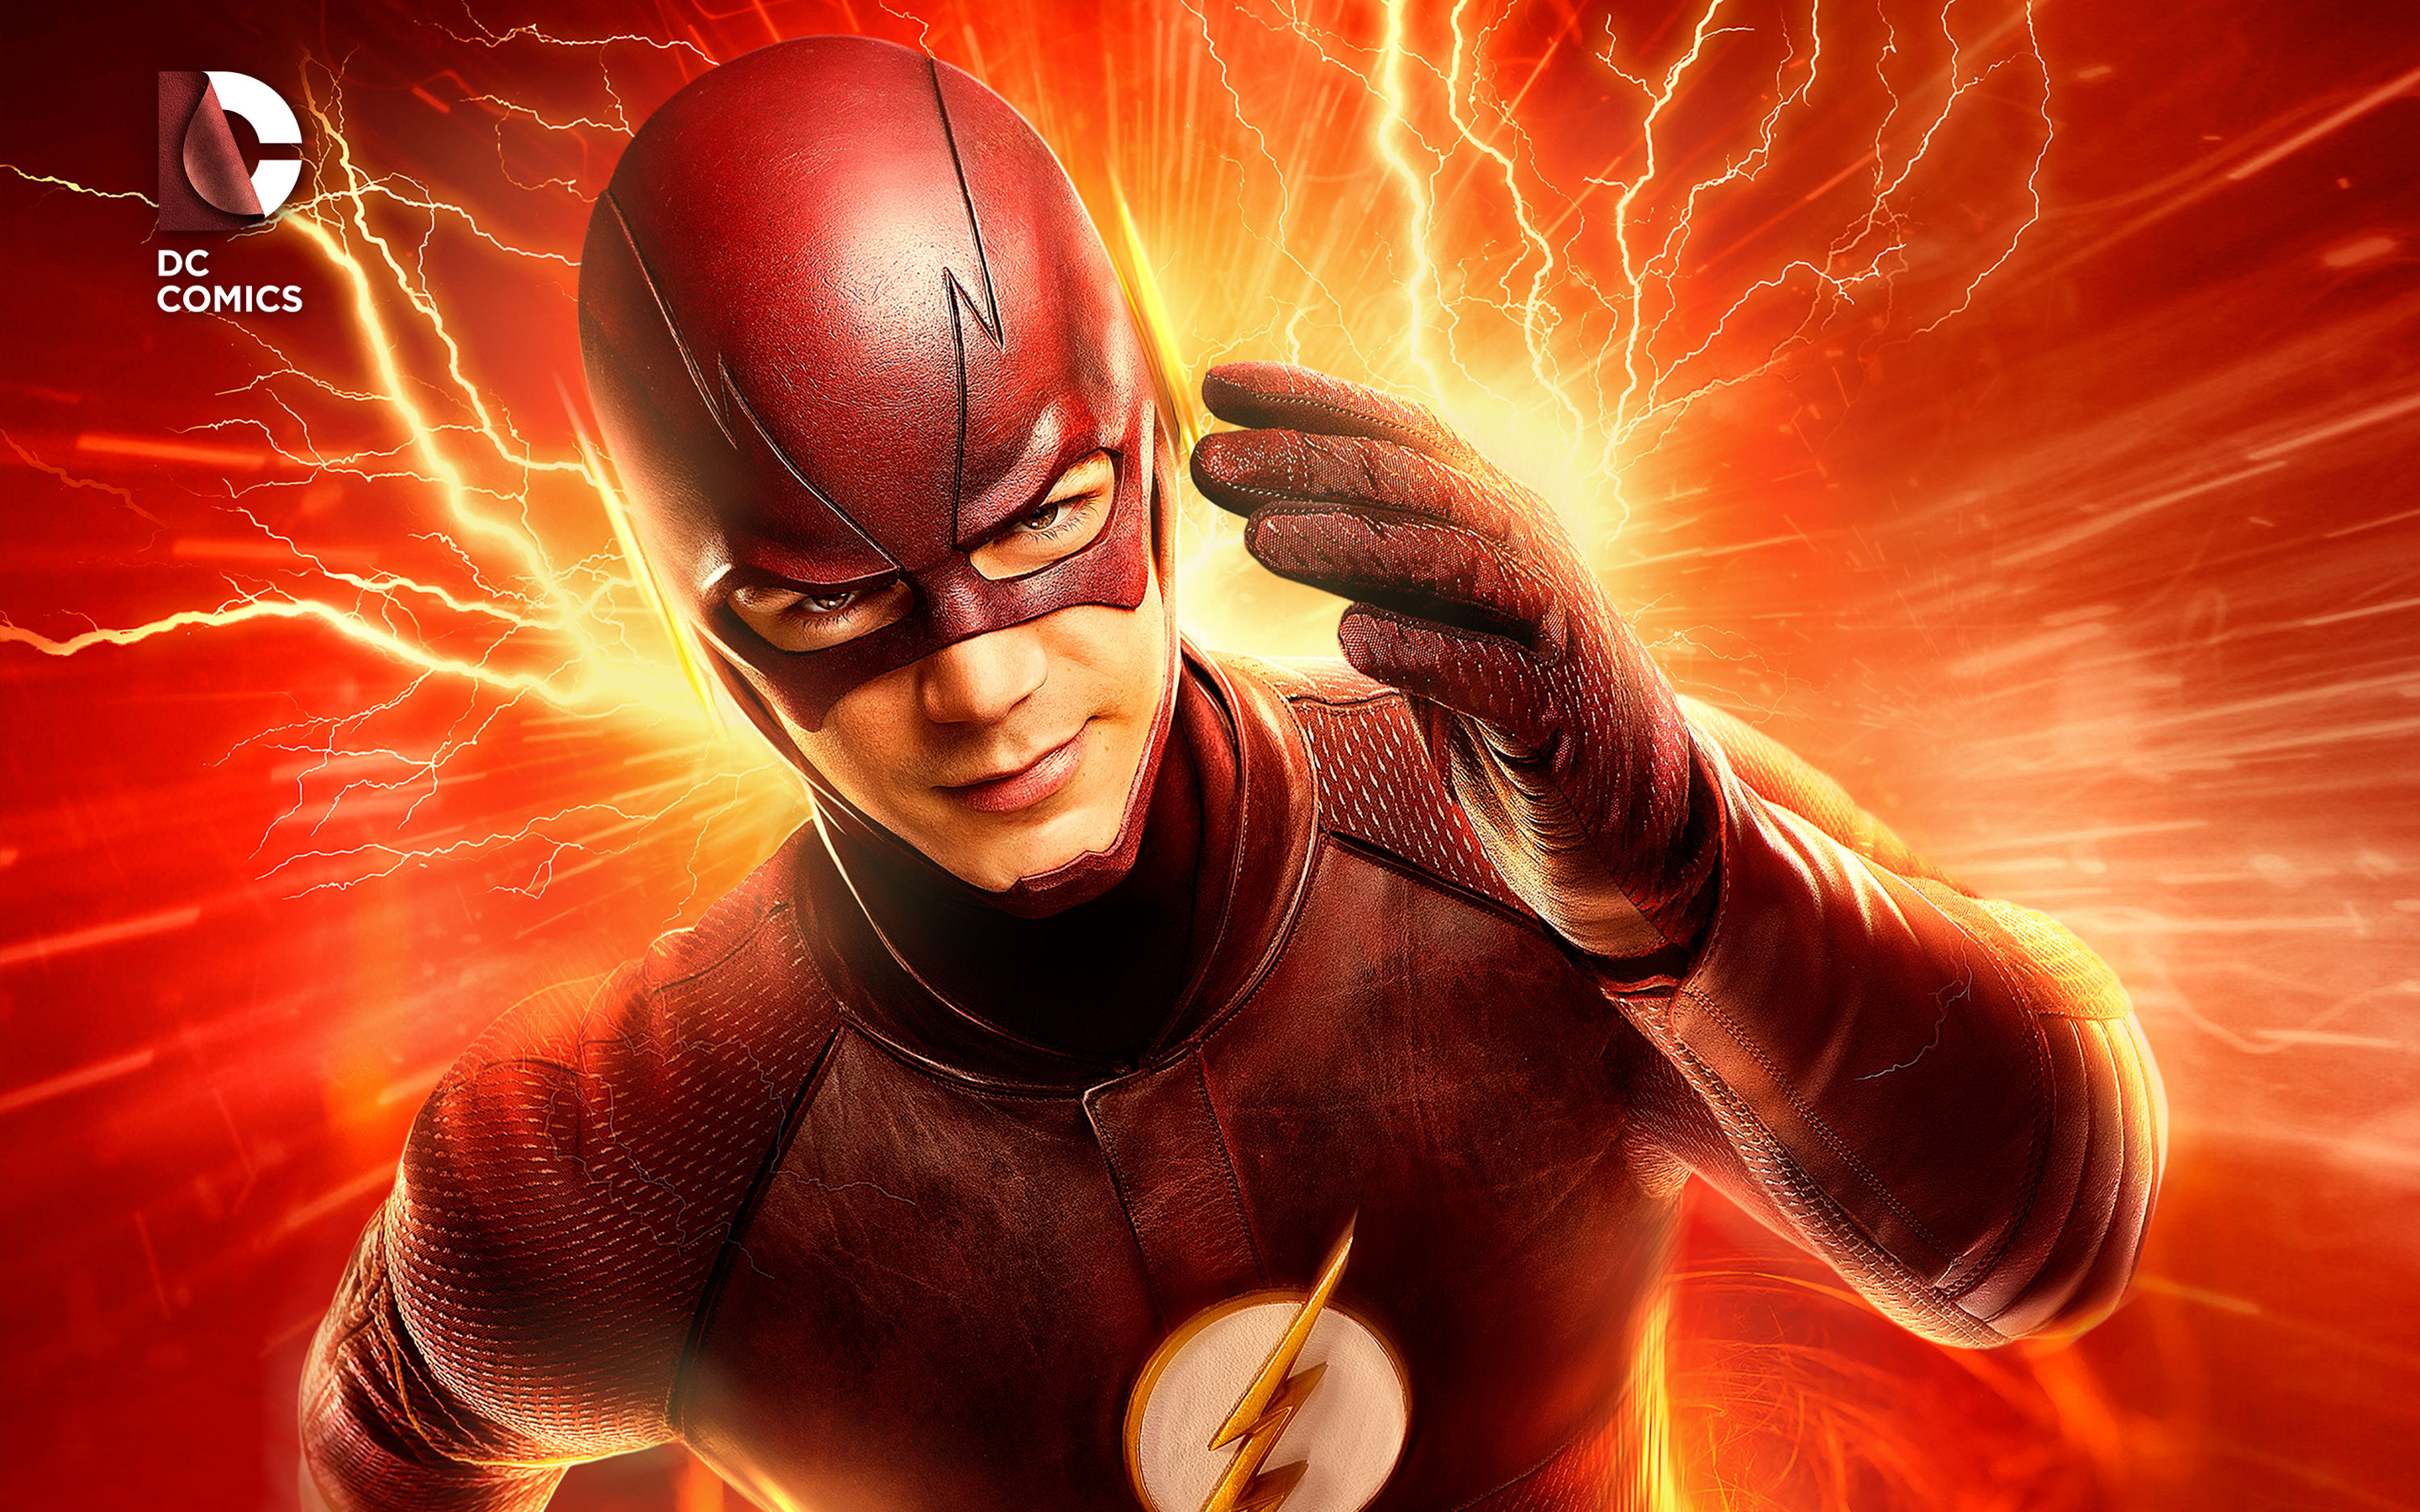 99 The Flash Wallpapers Wallpaper Cave The Flash Season 3 Hd Tv